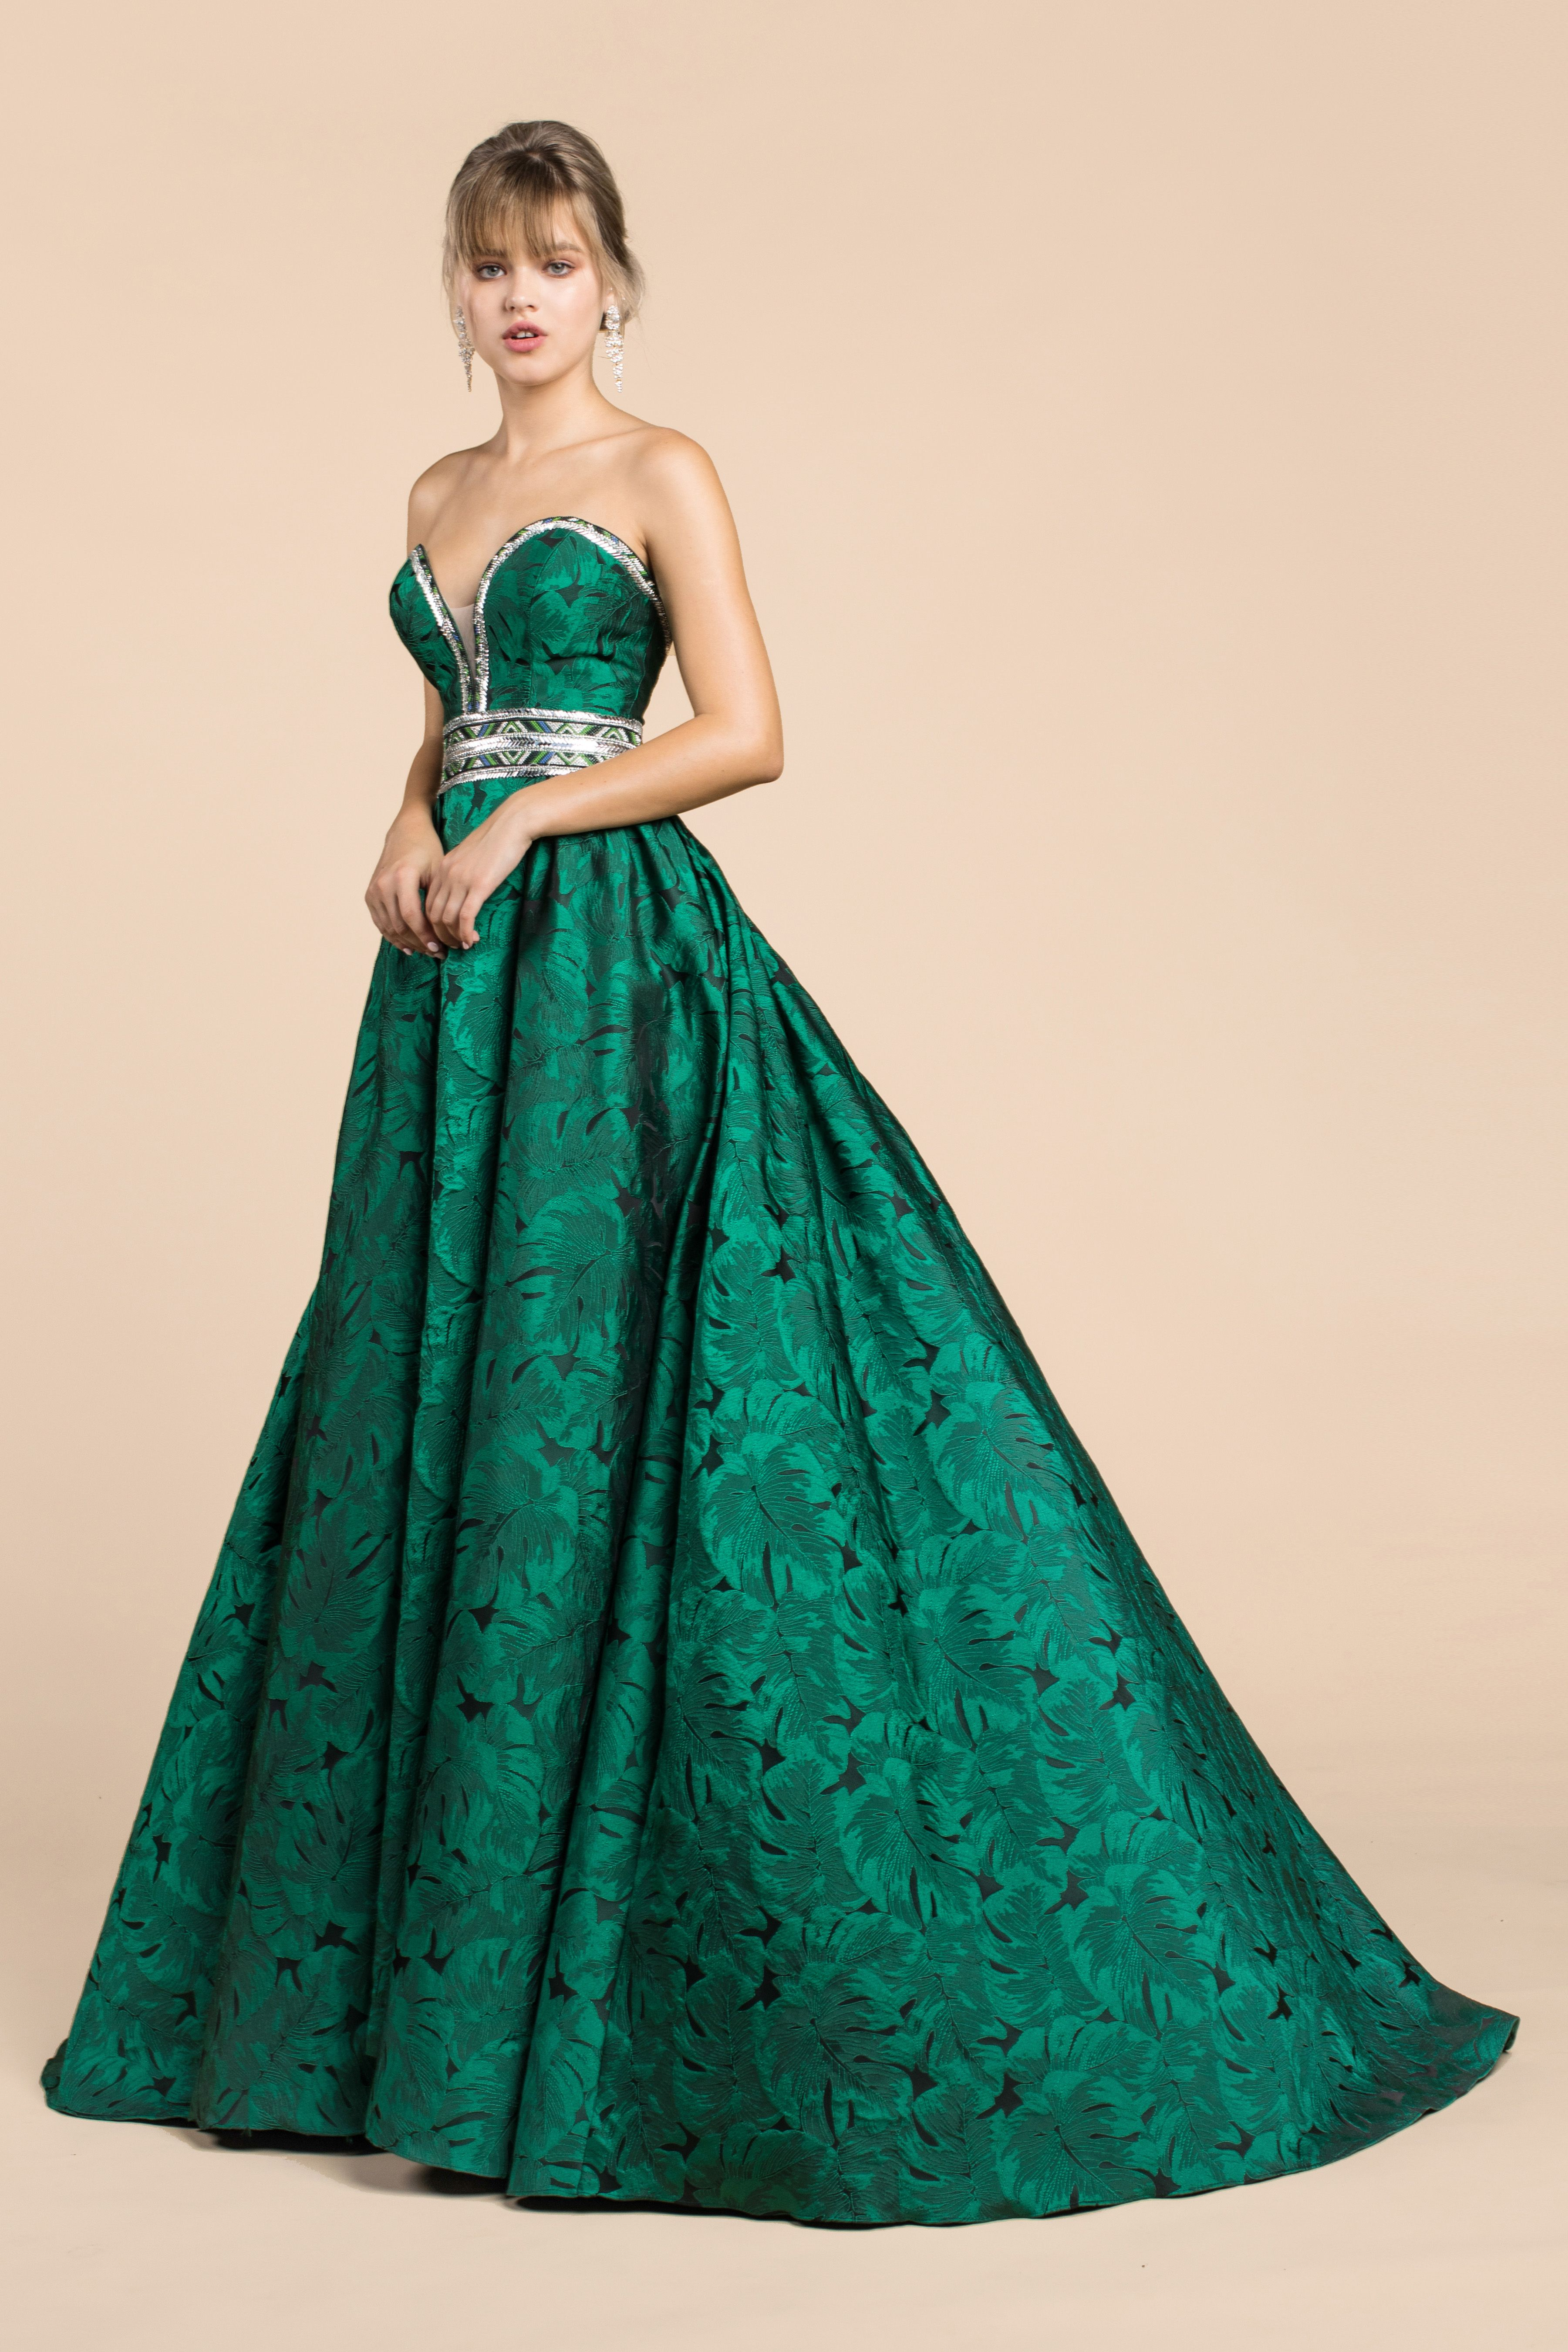 Emerald Green Goddess Dress